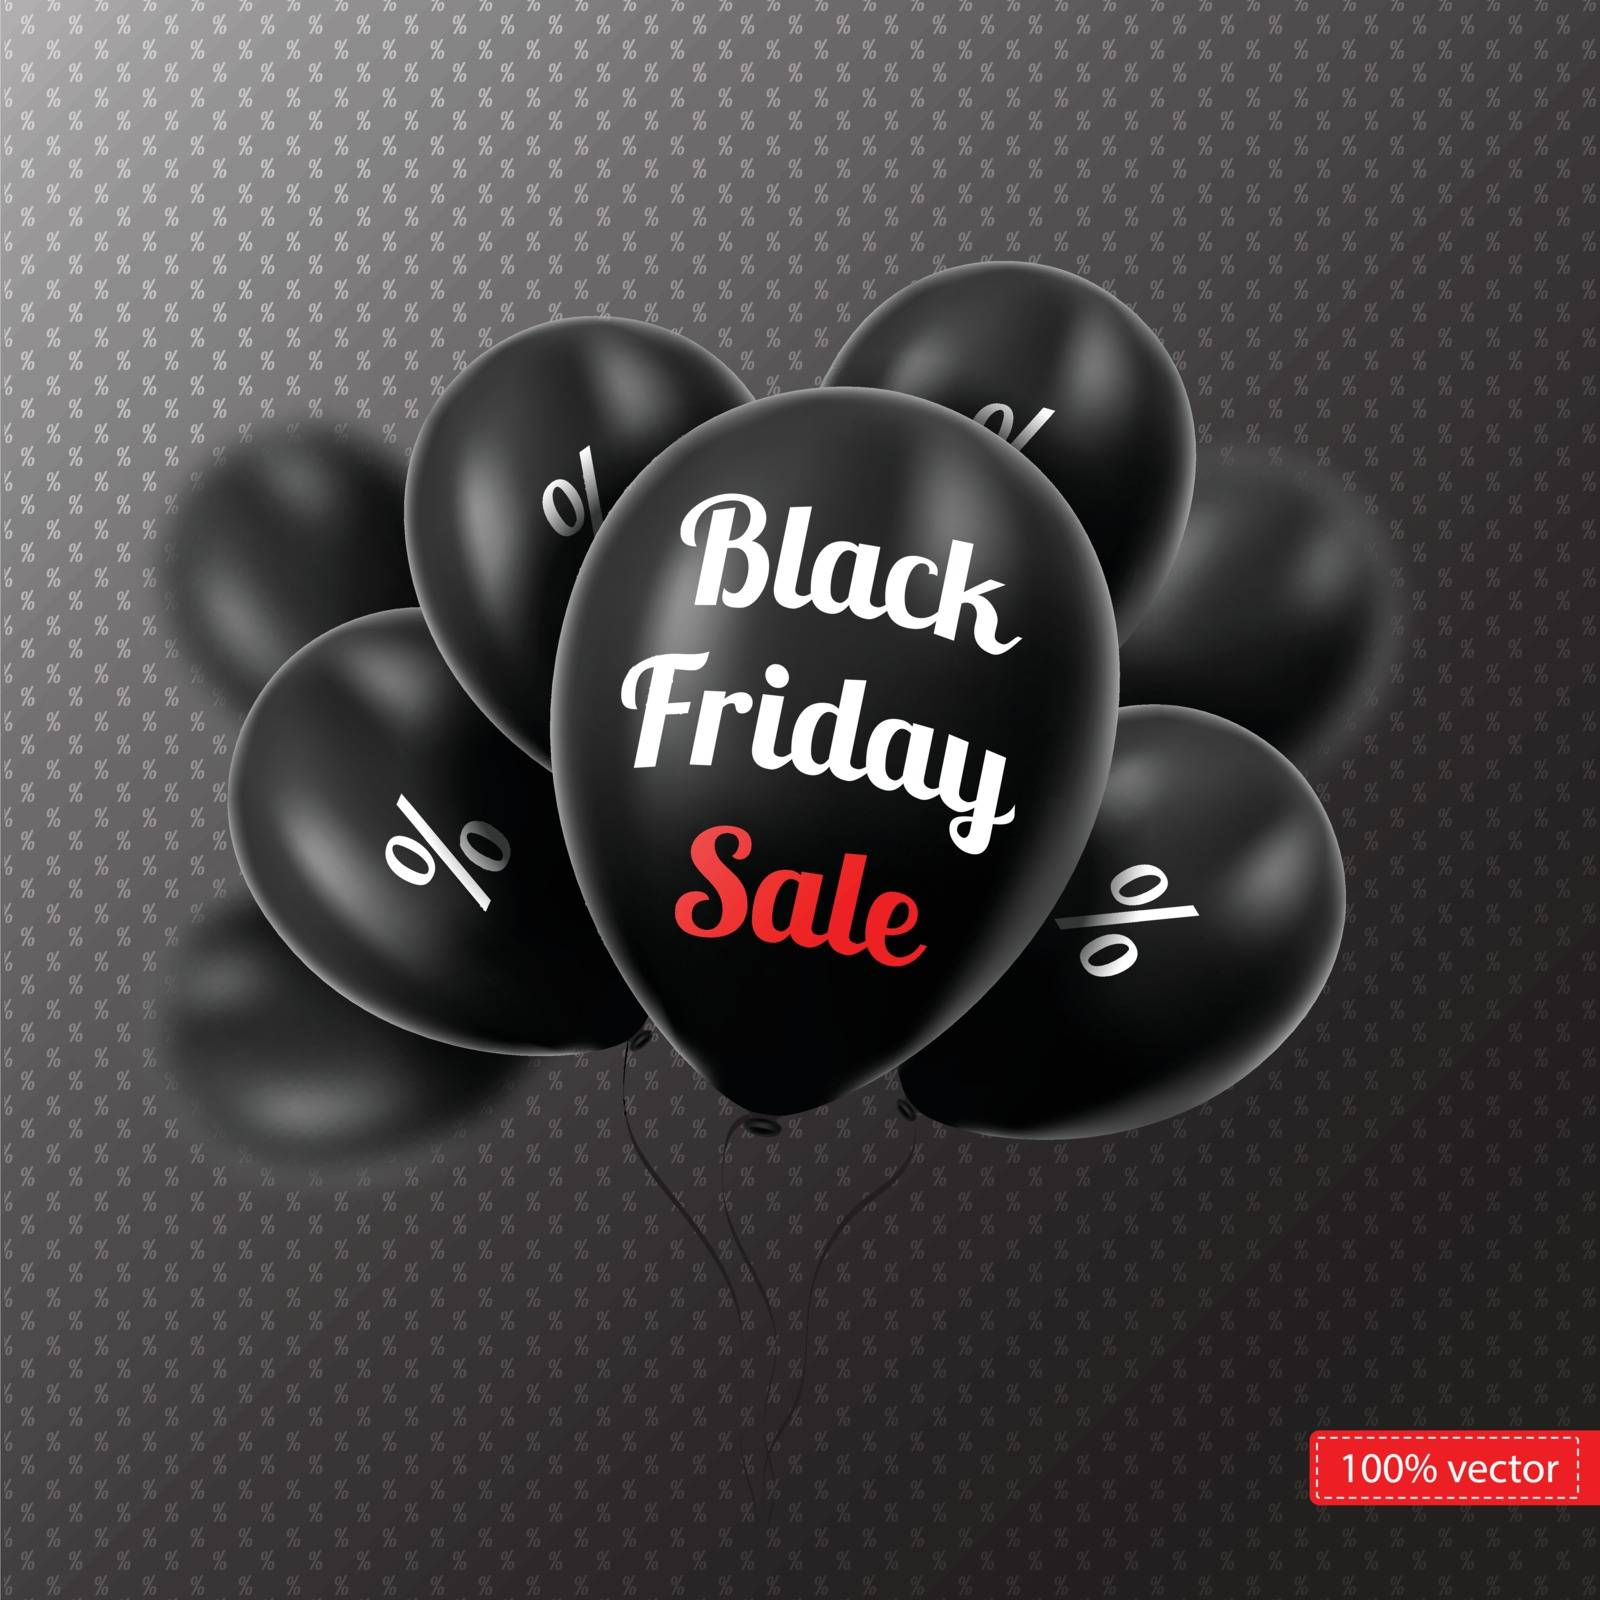 Vector.  Black Friday. Black balloons on a black background. Black balloons with discounts. Sales.